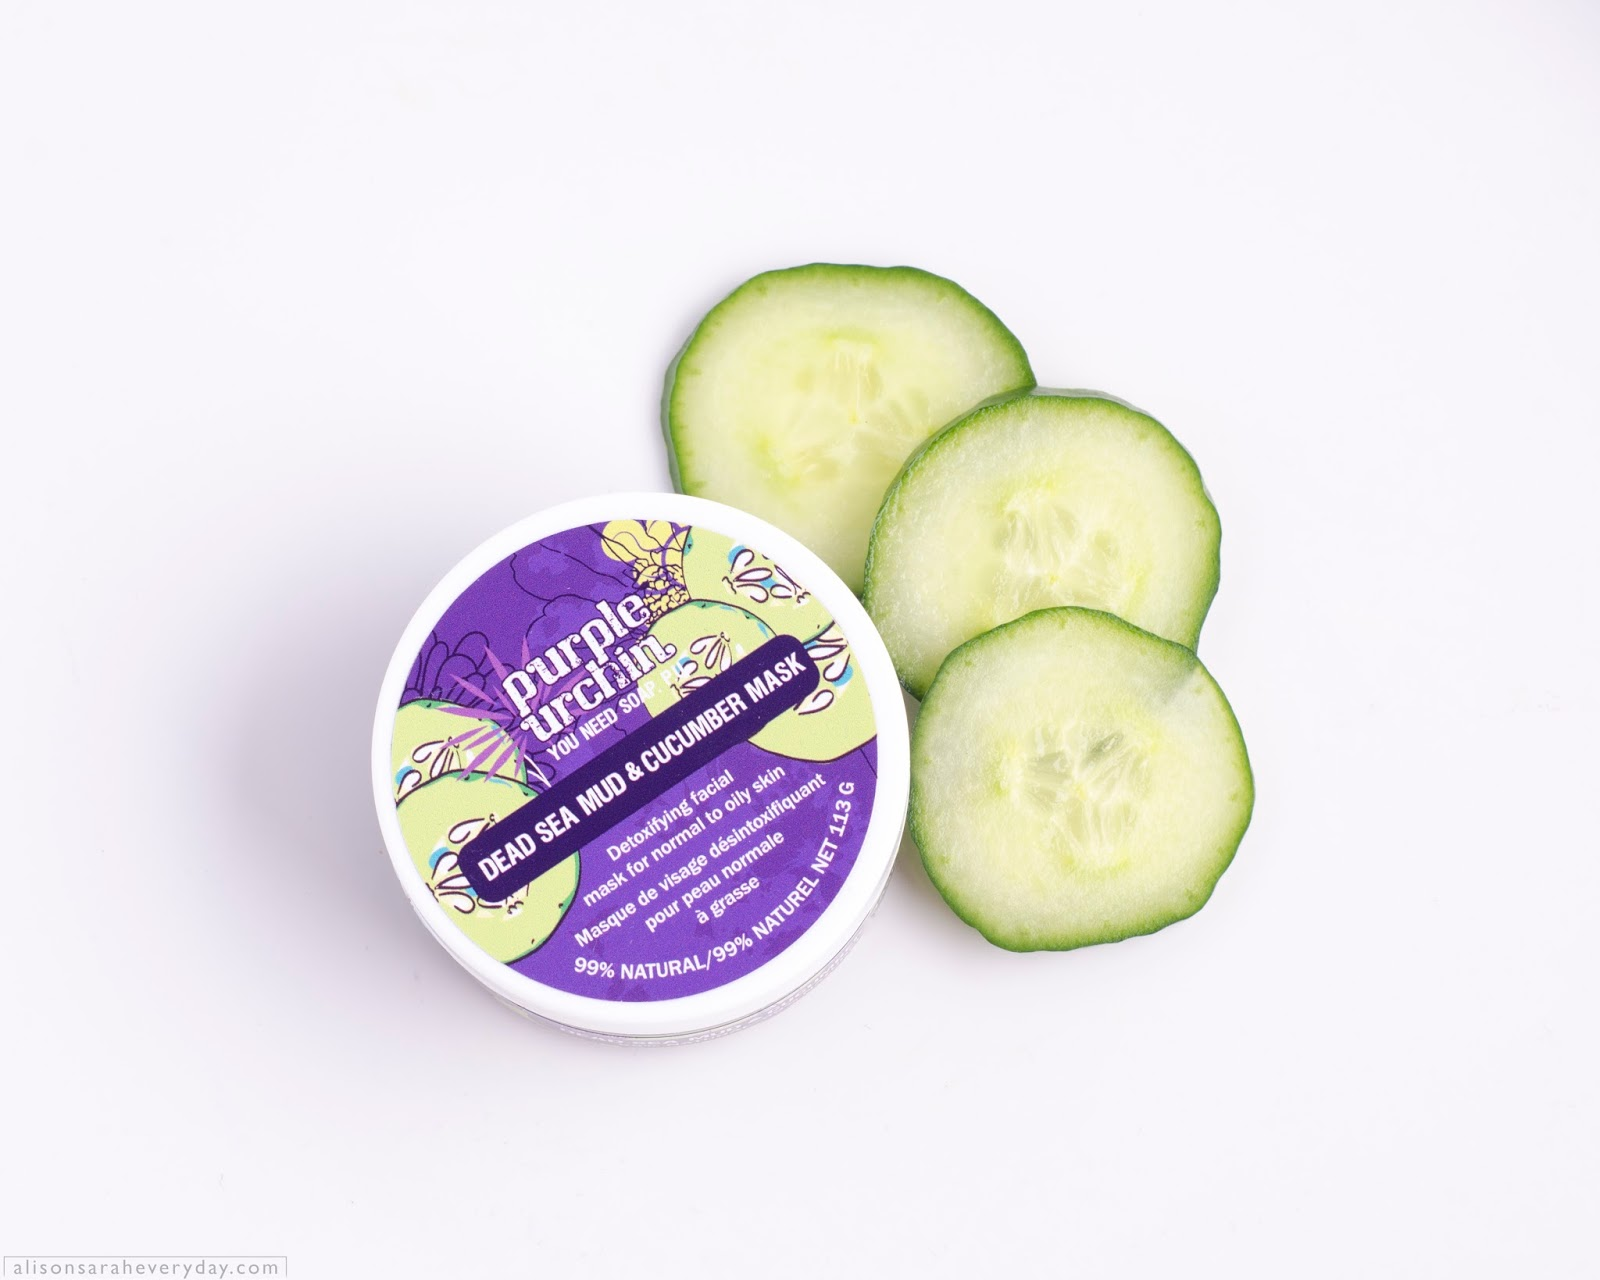 Purple Urchin Dead Sea Mud & Cucumber Mask with the lid on displayed on a white background with cucumber slices